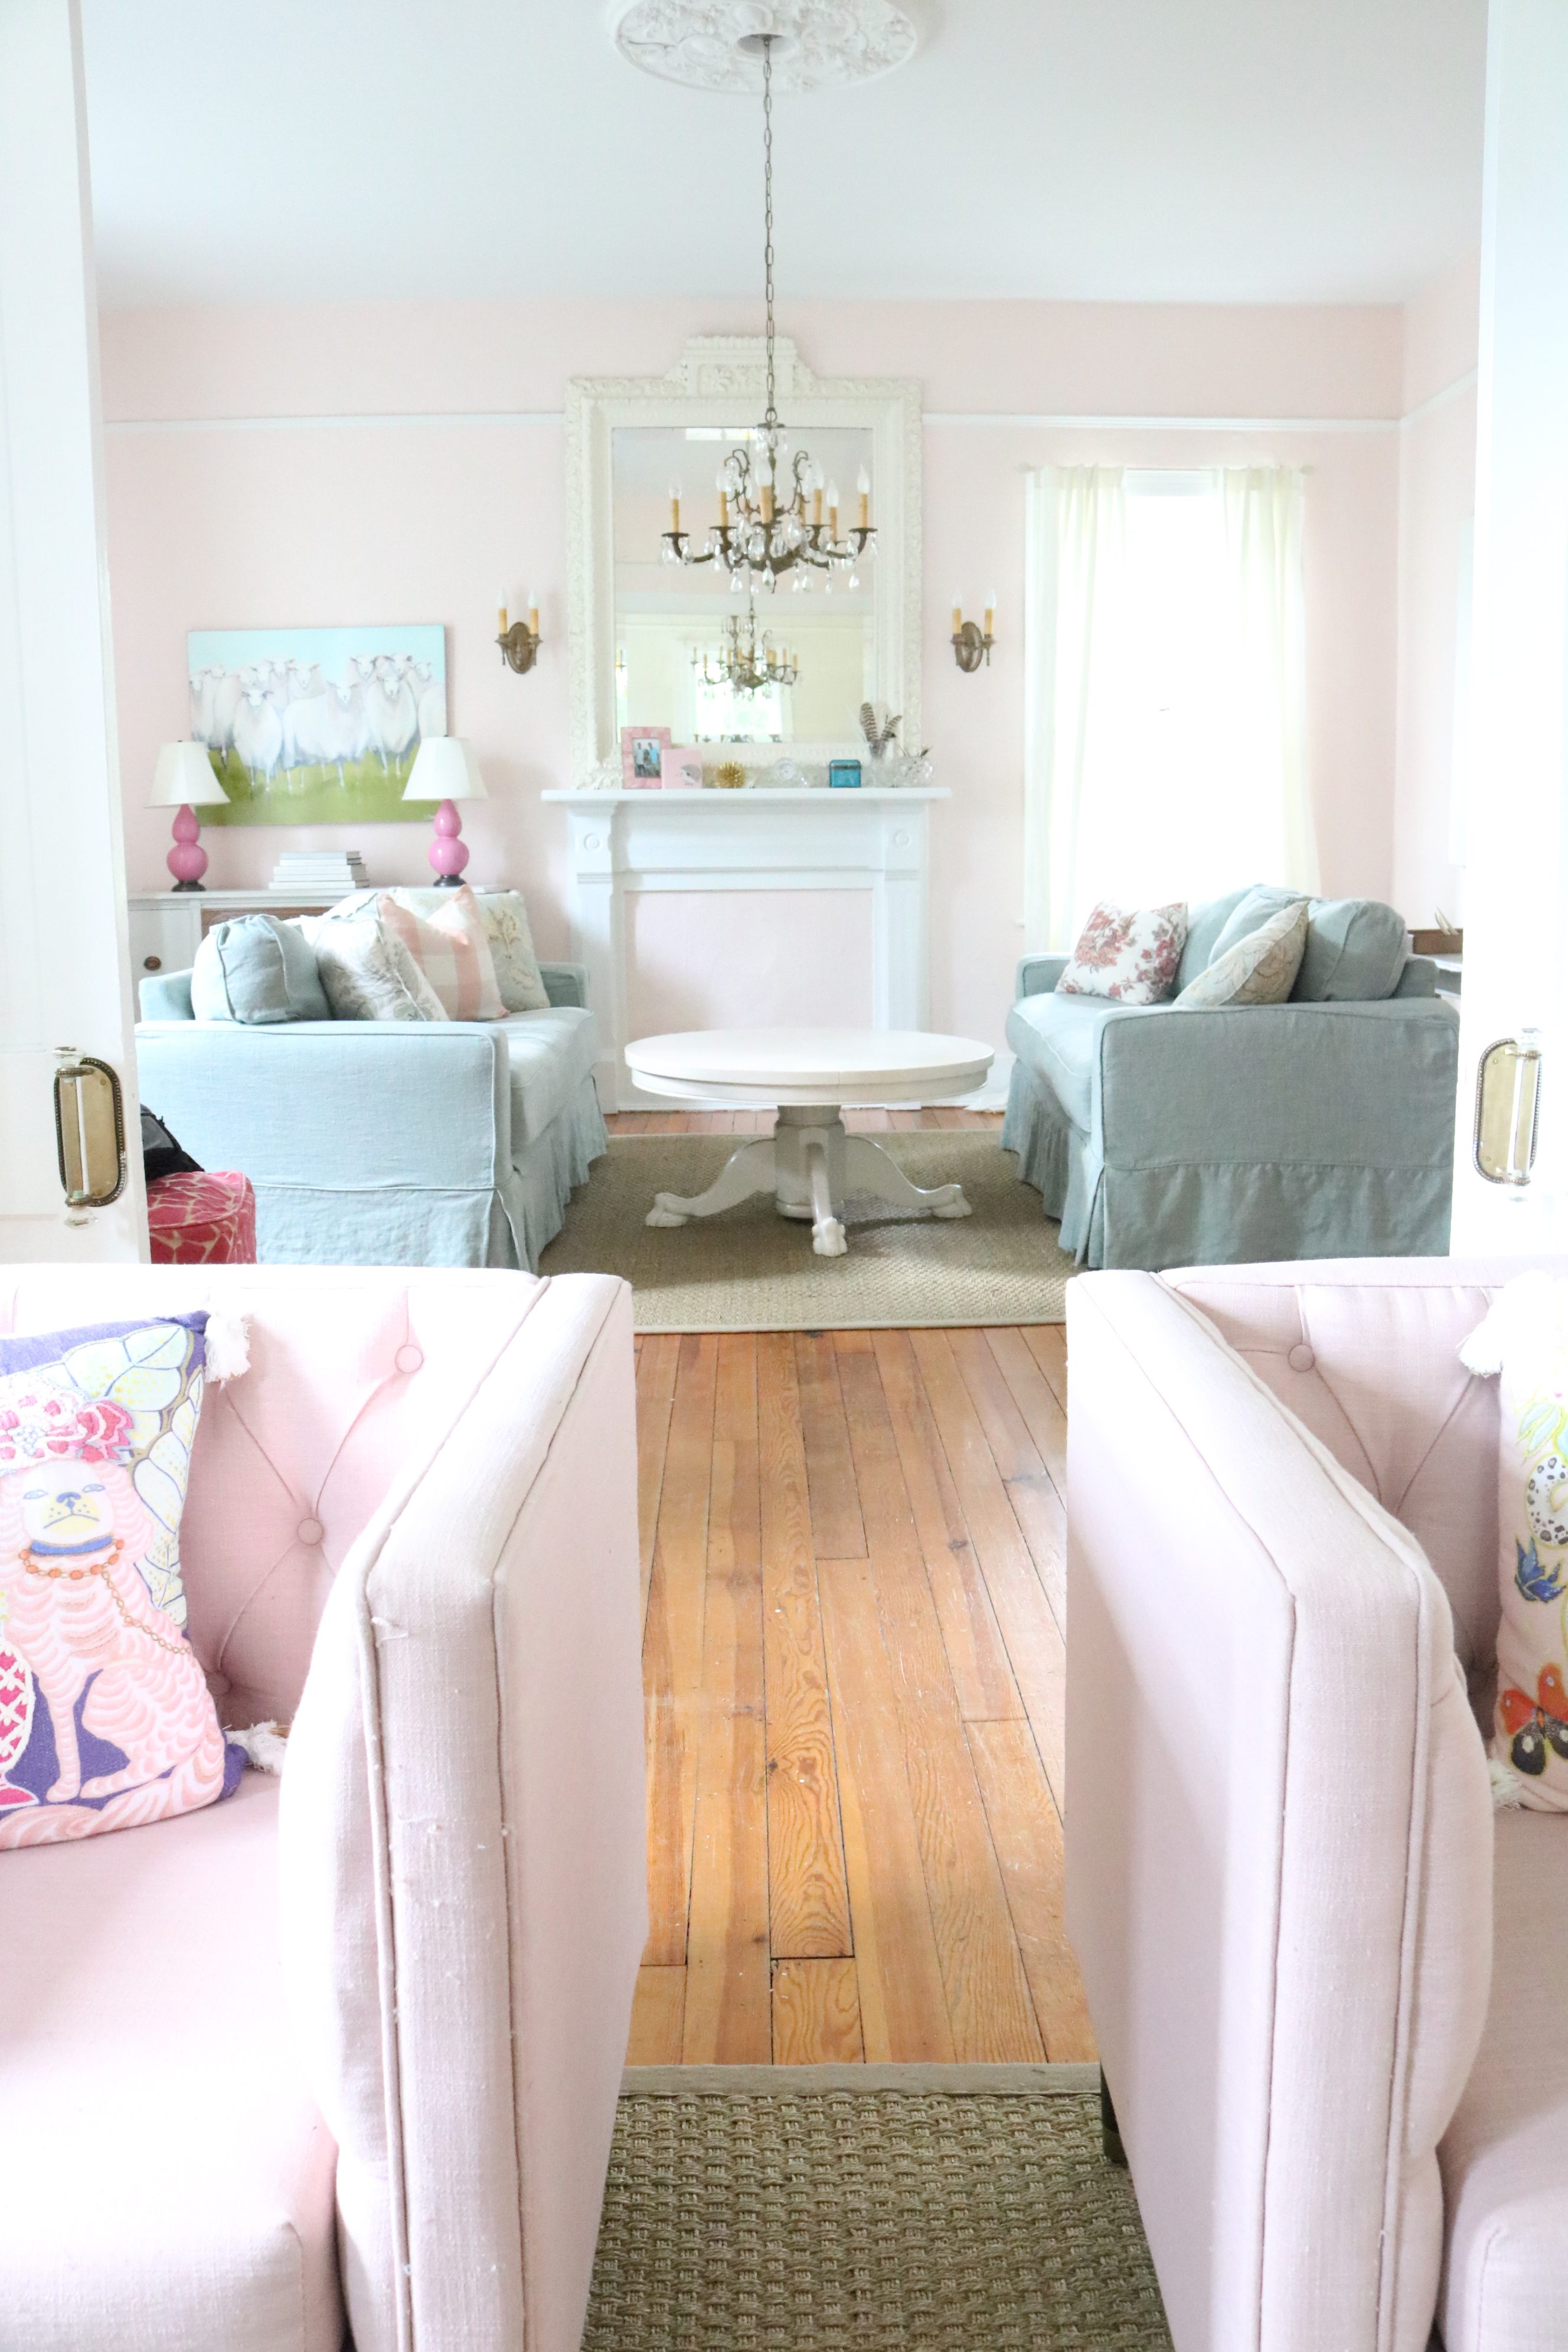 THE RETURN OF THE PINK LIVING ROOM –